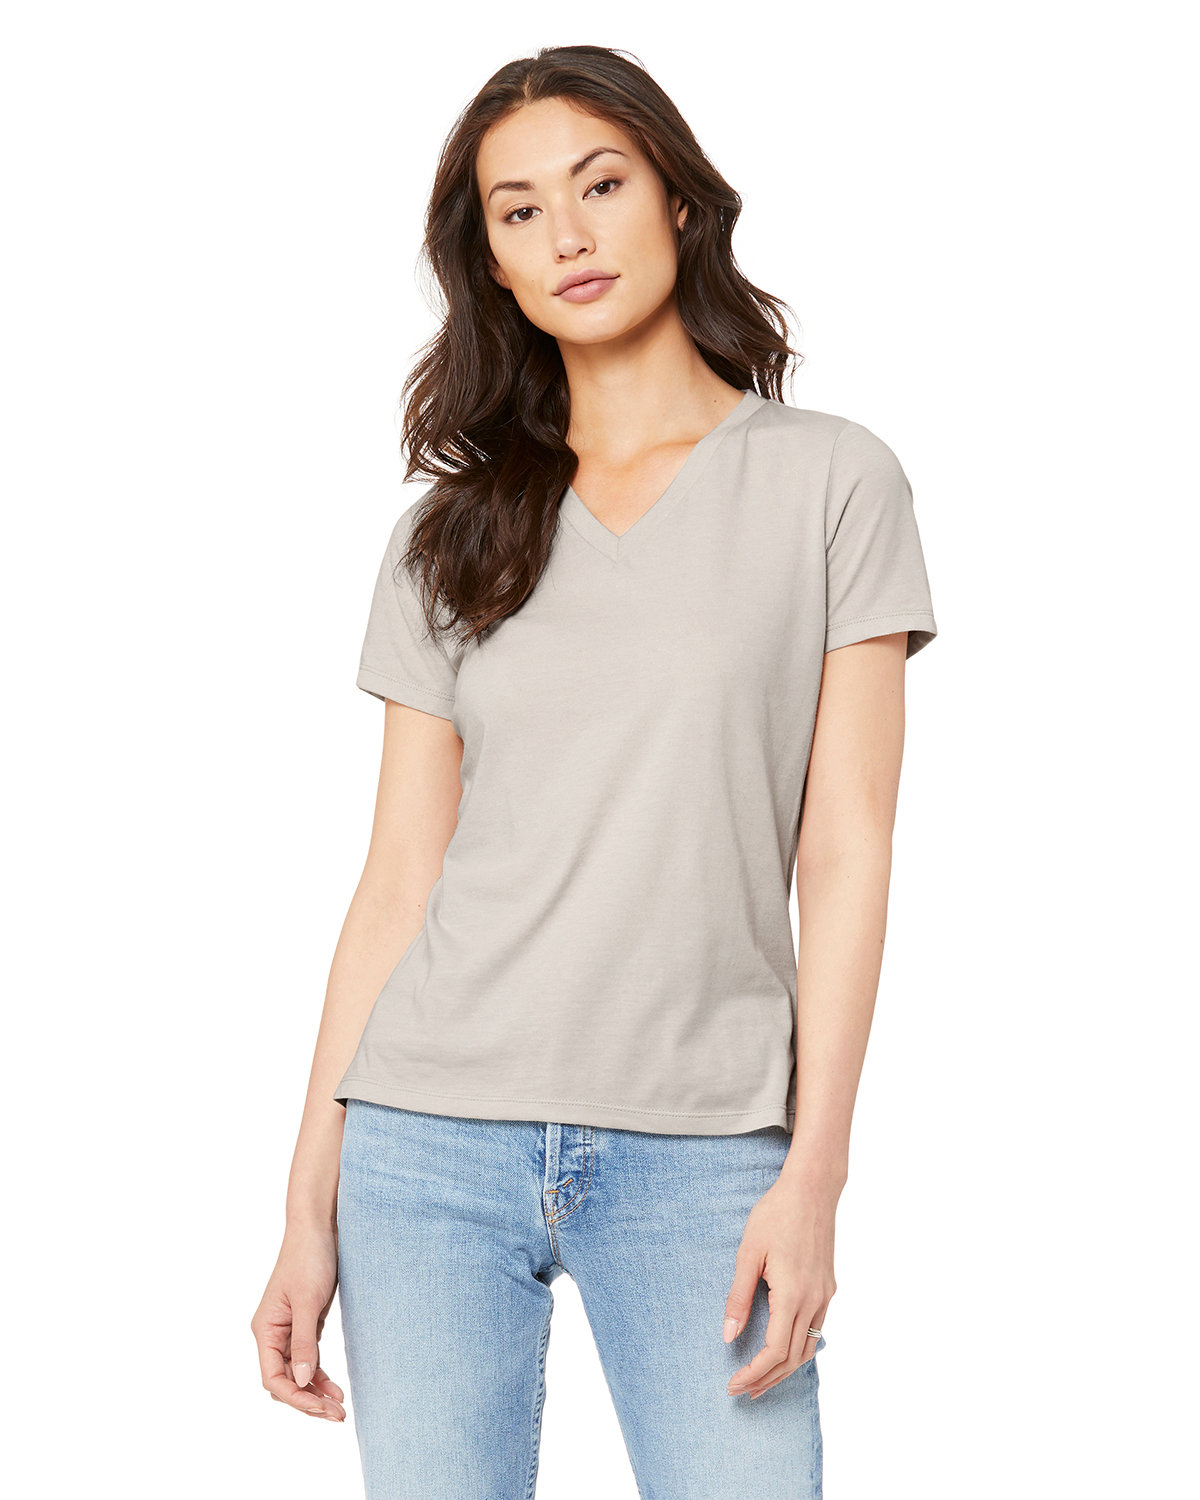 Bella + Canvas Ladies' Relaxed Jersey V-Neck T-Shirt HEATHER DUST